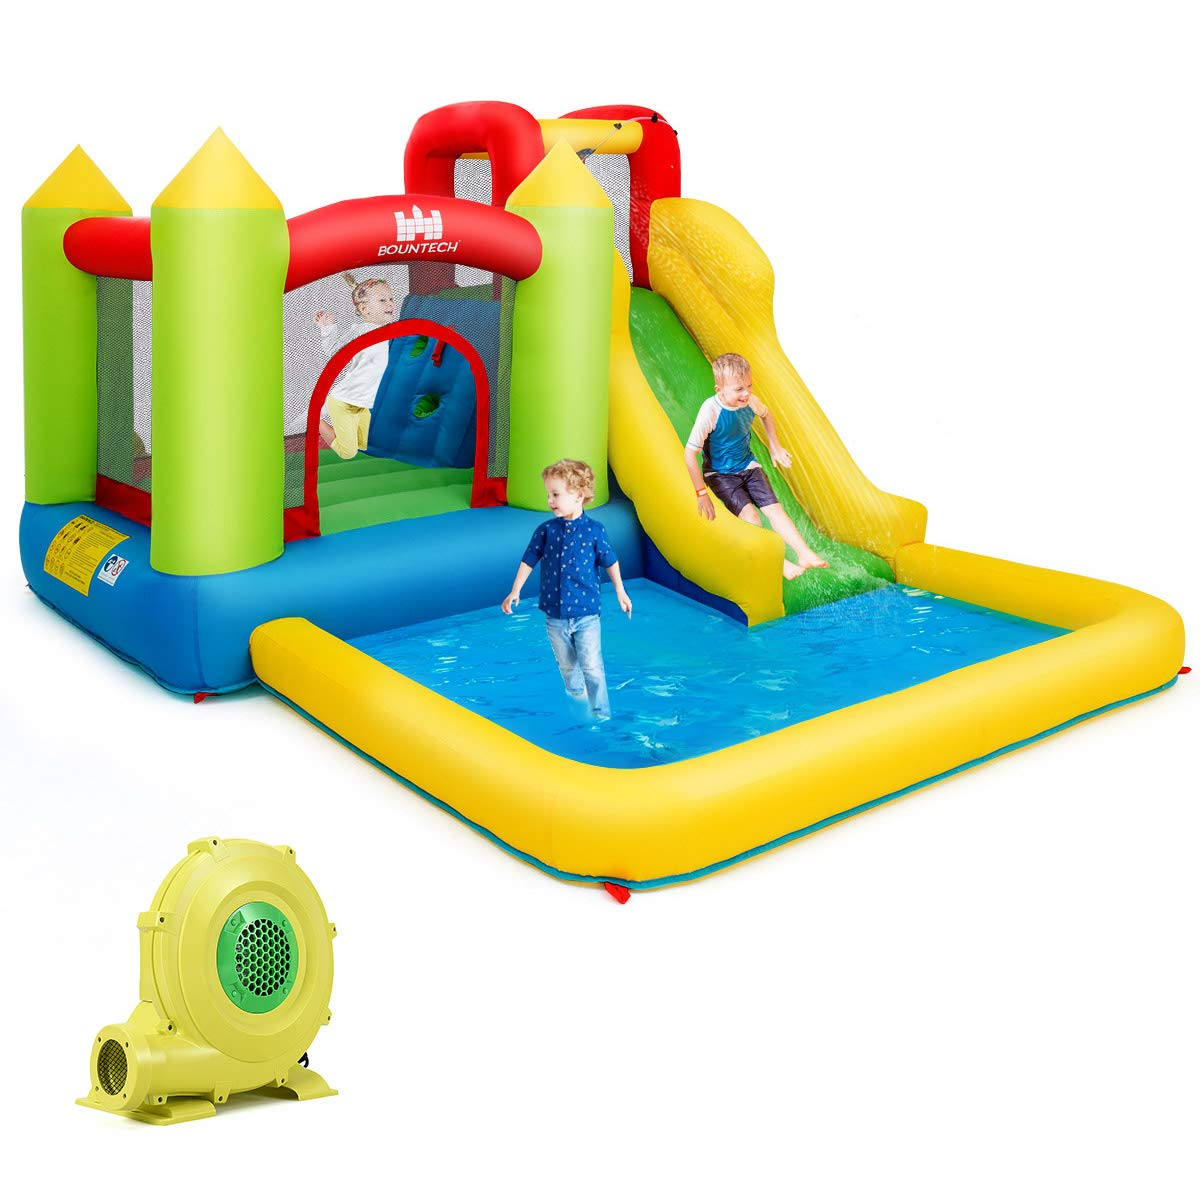 Costzon Inflatable Bounce House, Kids Water Slide with Climbing Wall, Jumping Area, Plash Pool, Including Oxford Carry Bag, Repairing Kit, Stakes, Hose (with 680W Air Blower) by Costzon